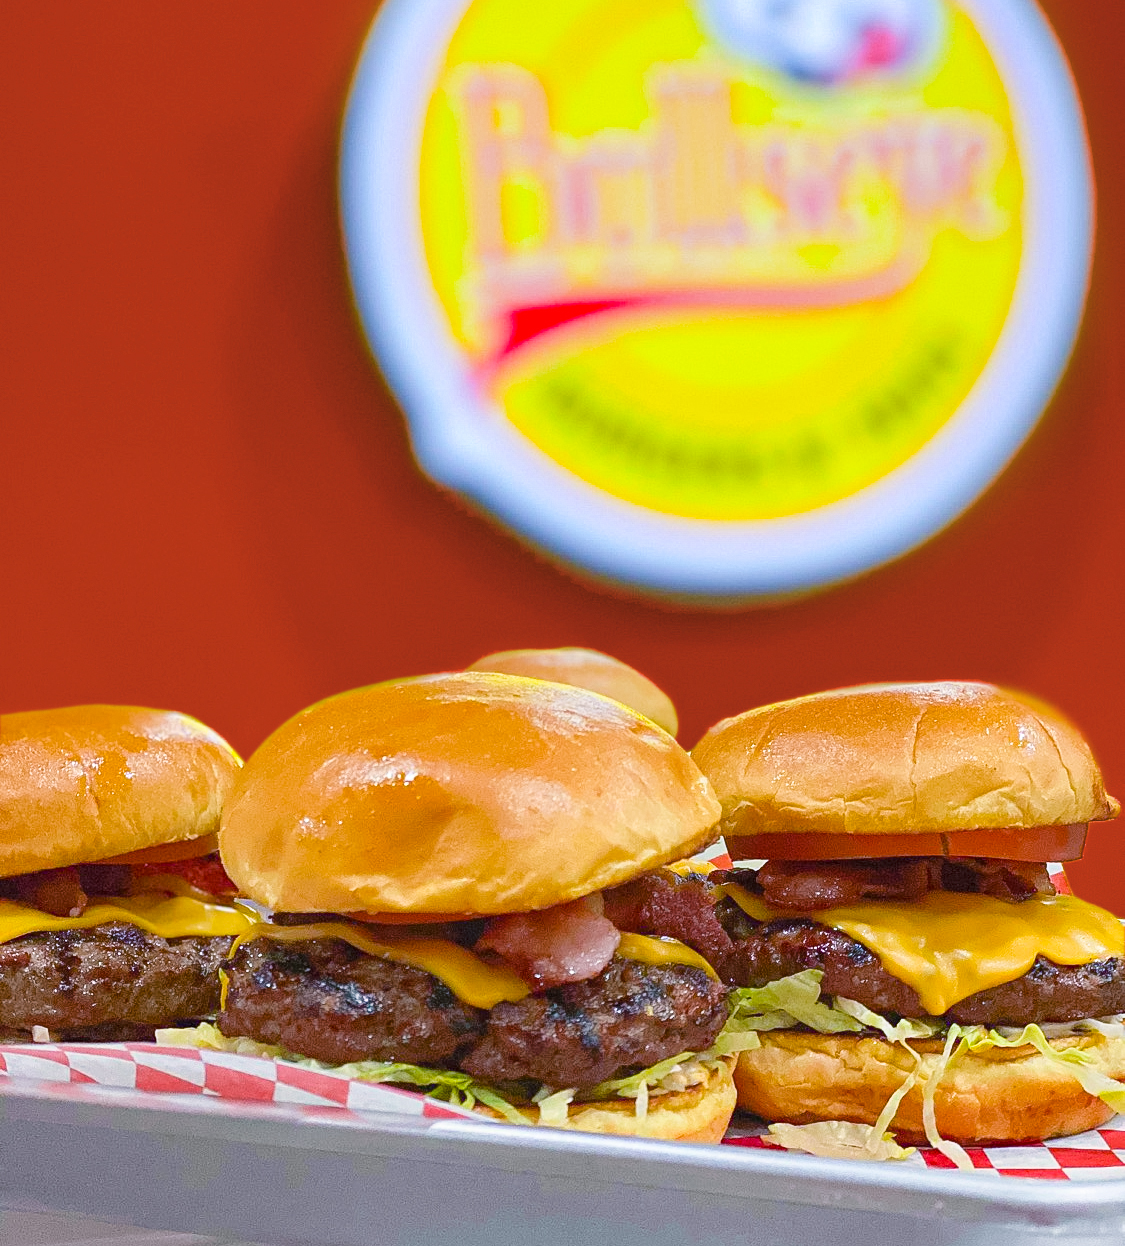 Platter of four Bullseye Burgers with bacon, cheese, lettuce, and tomato